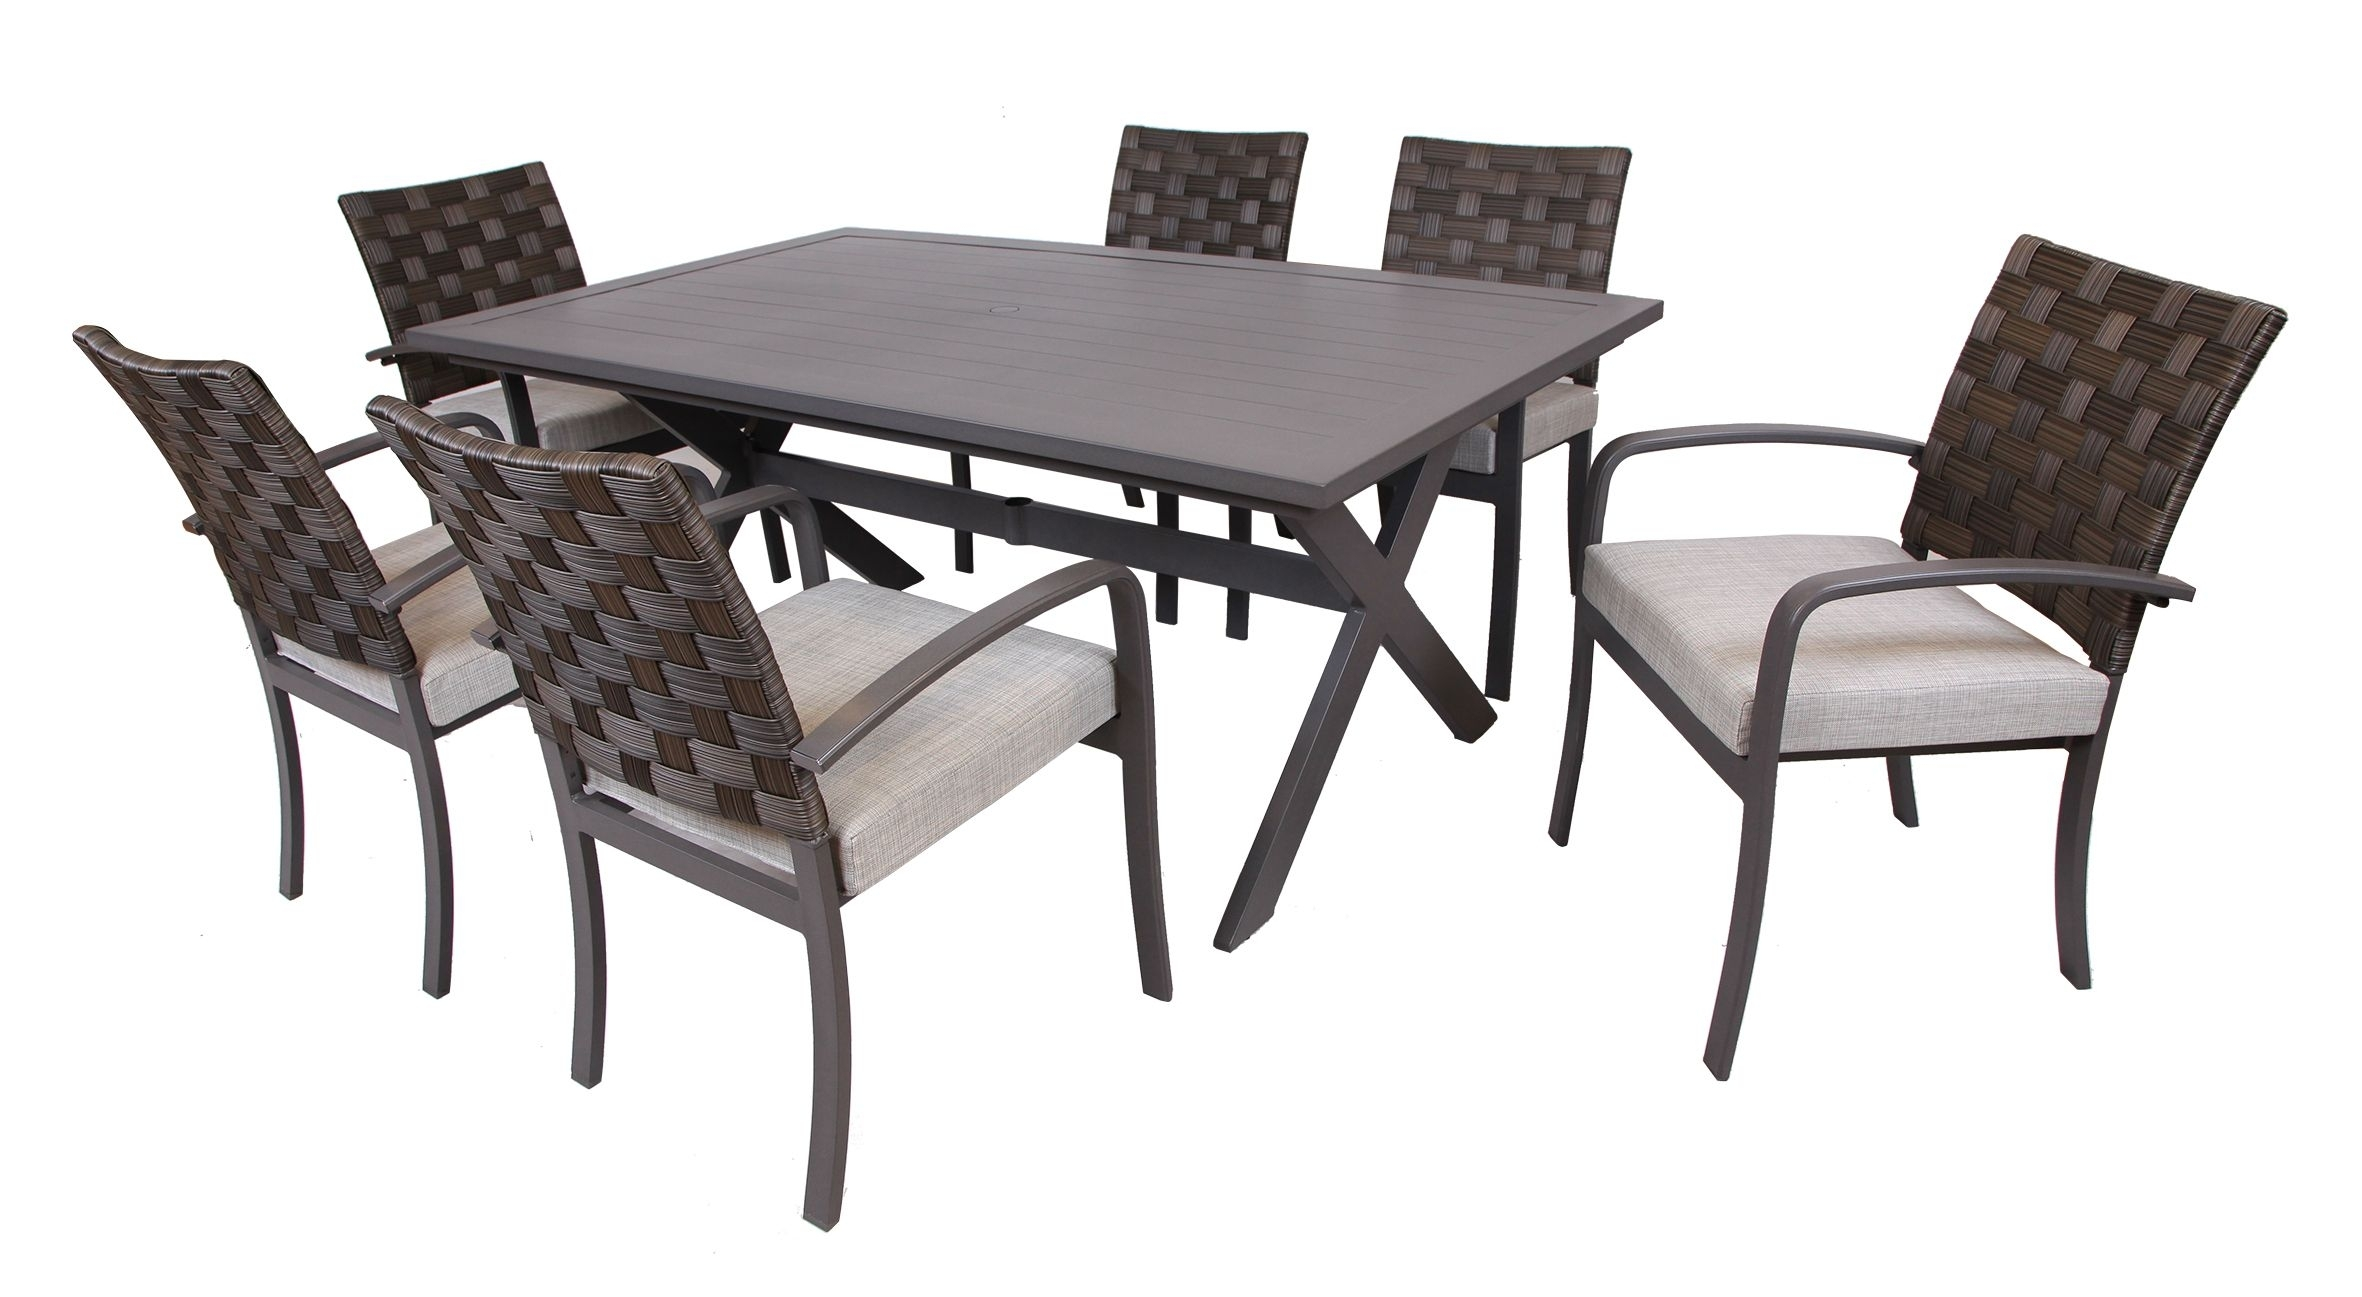 3I Northtown 7 Pc. Dining Set – Bj's Wholesale Club | Outdoor Living Within Latest Laurent 7 Piece Rectangle Dining Sets With Wood And Host Chairs (Photo 6 of 20)